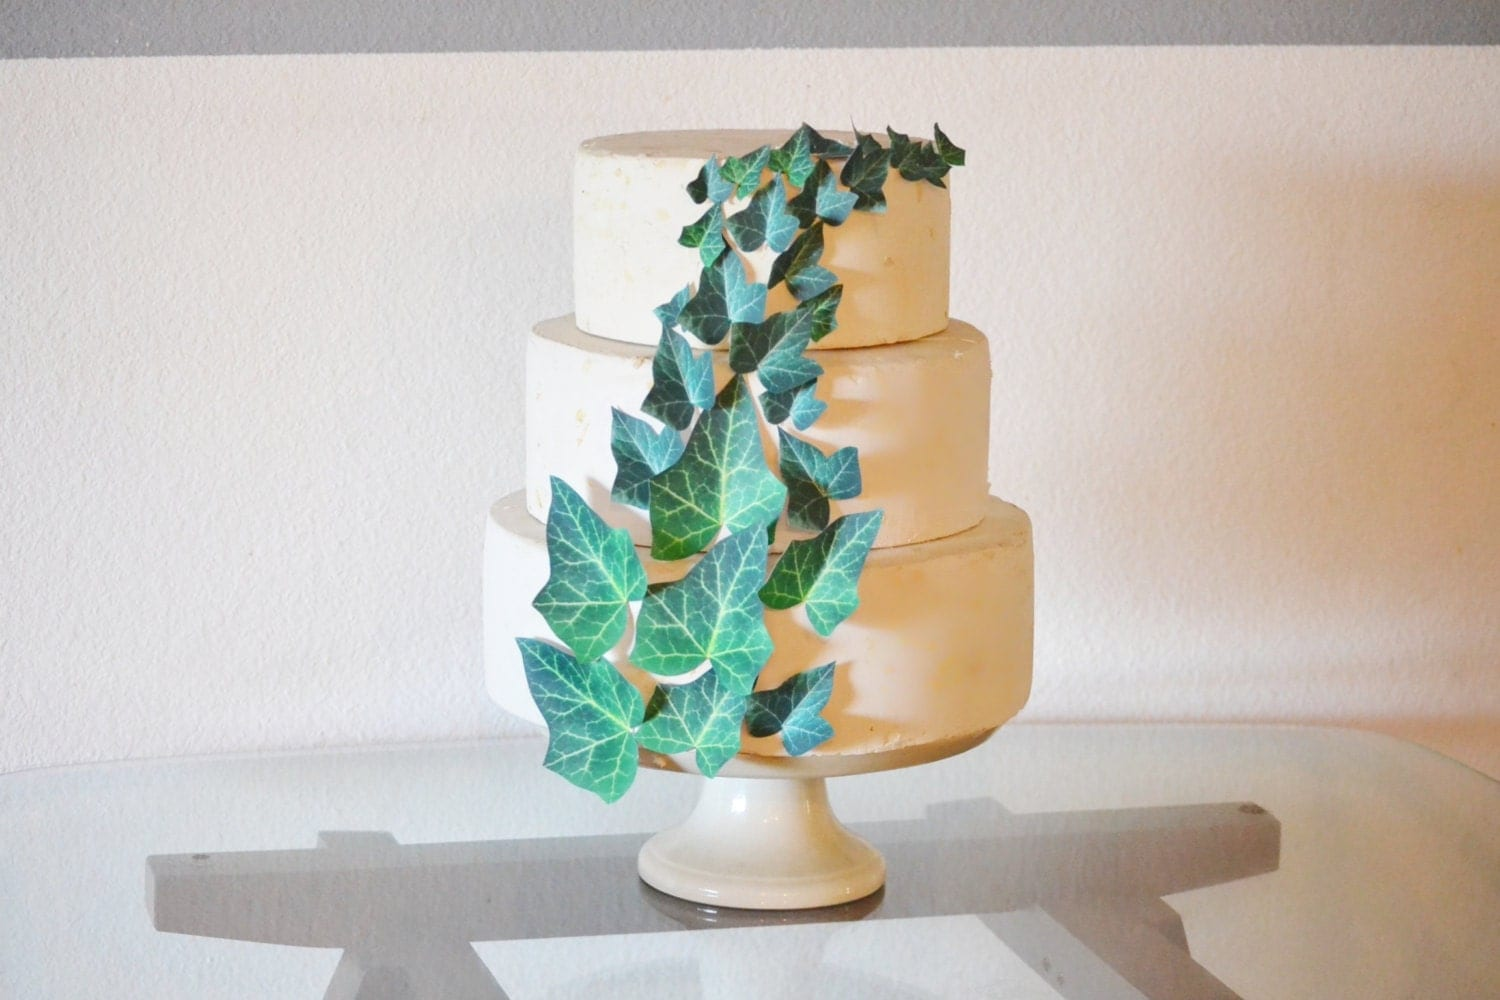 Cake Decorating Ivy Leaves : Edible Ivy Leaves Cake & Cupcake toppers Wedding Cake